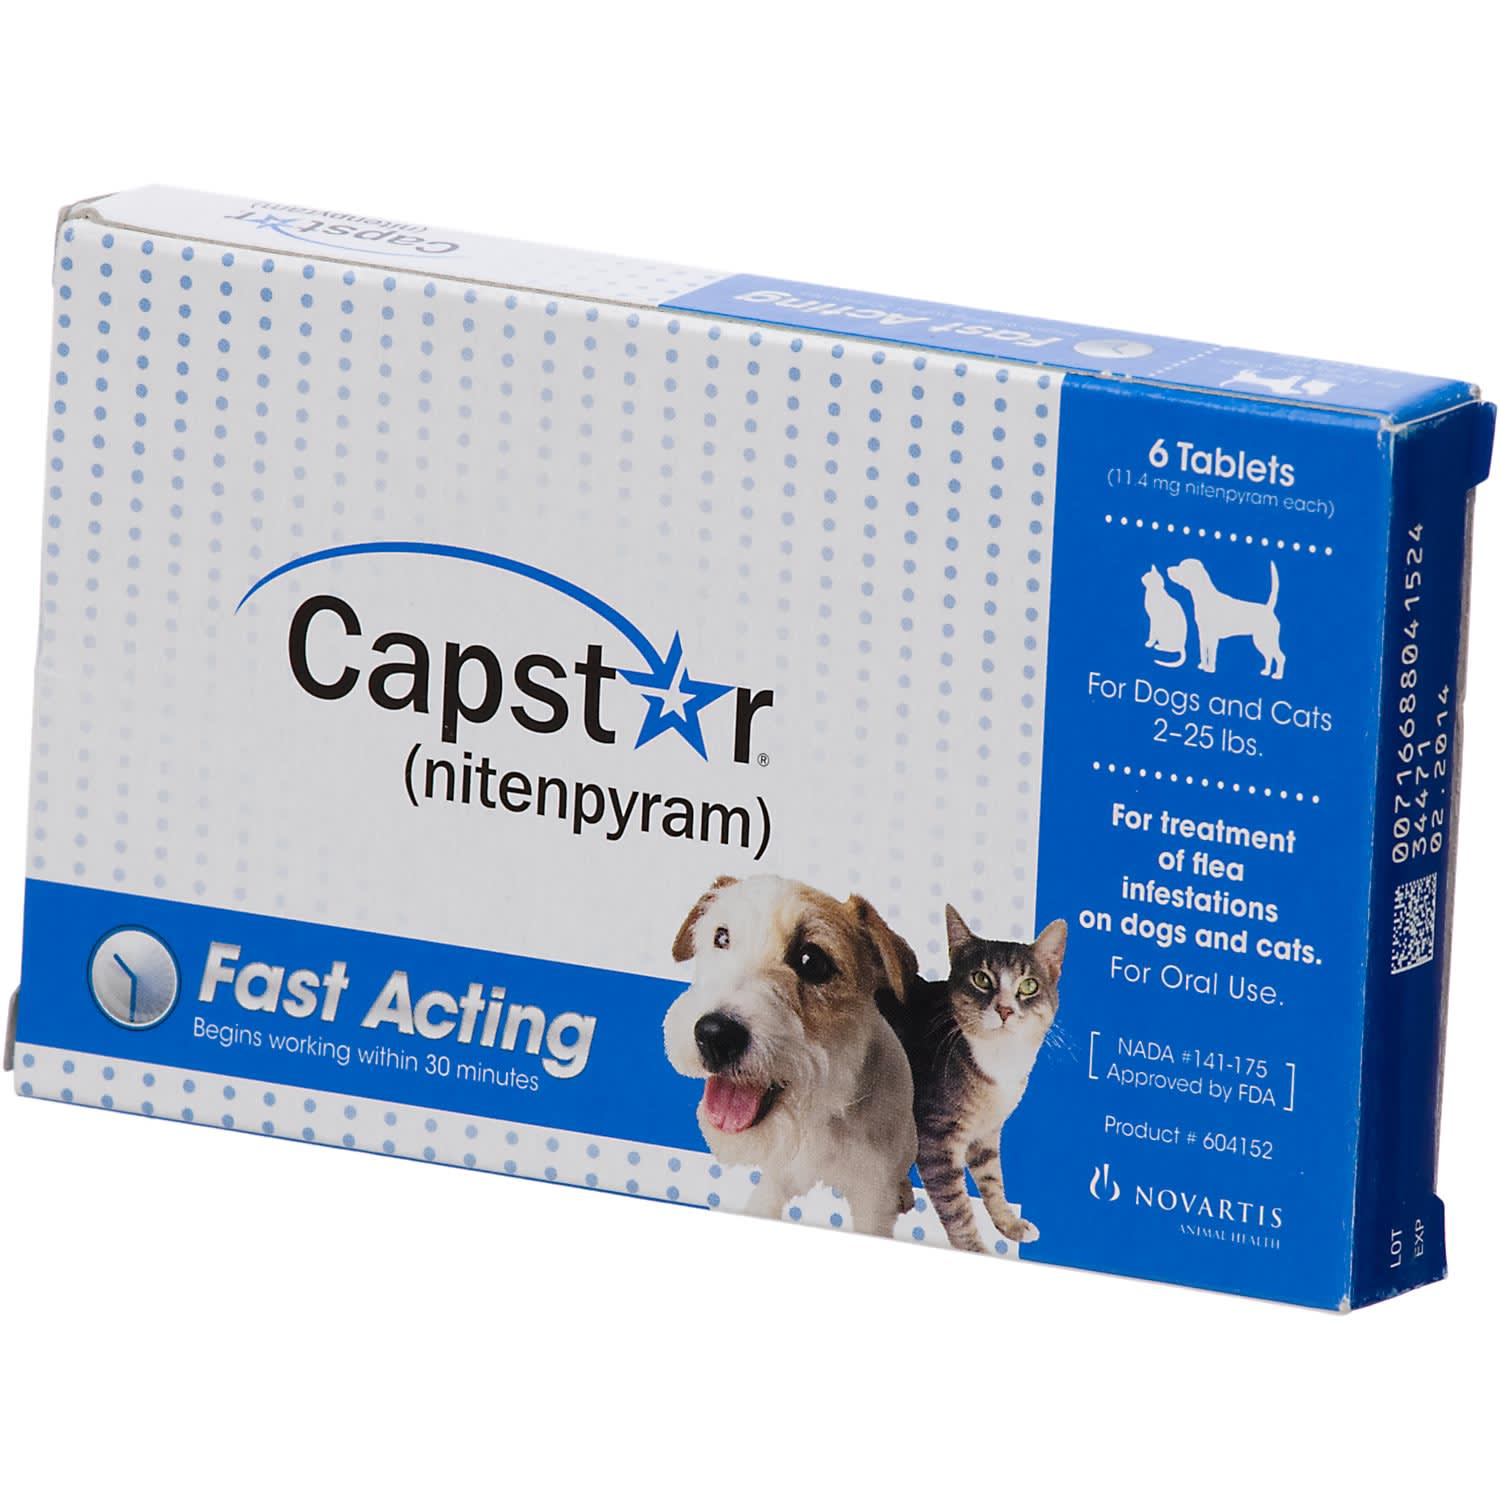 Capstar Flea Tablets For Dogs And Cats 2 25 Lbs Petco